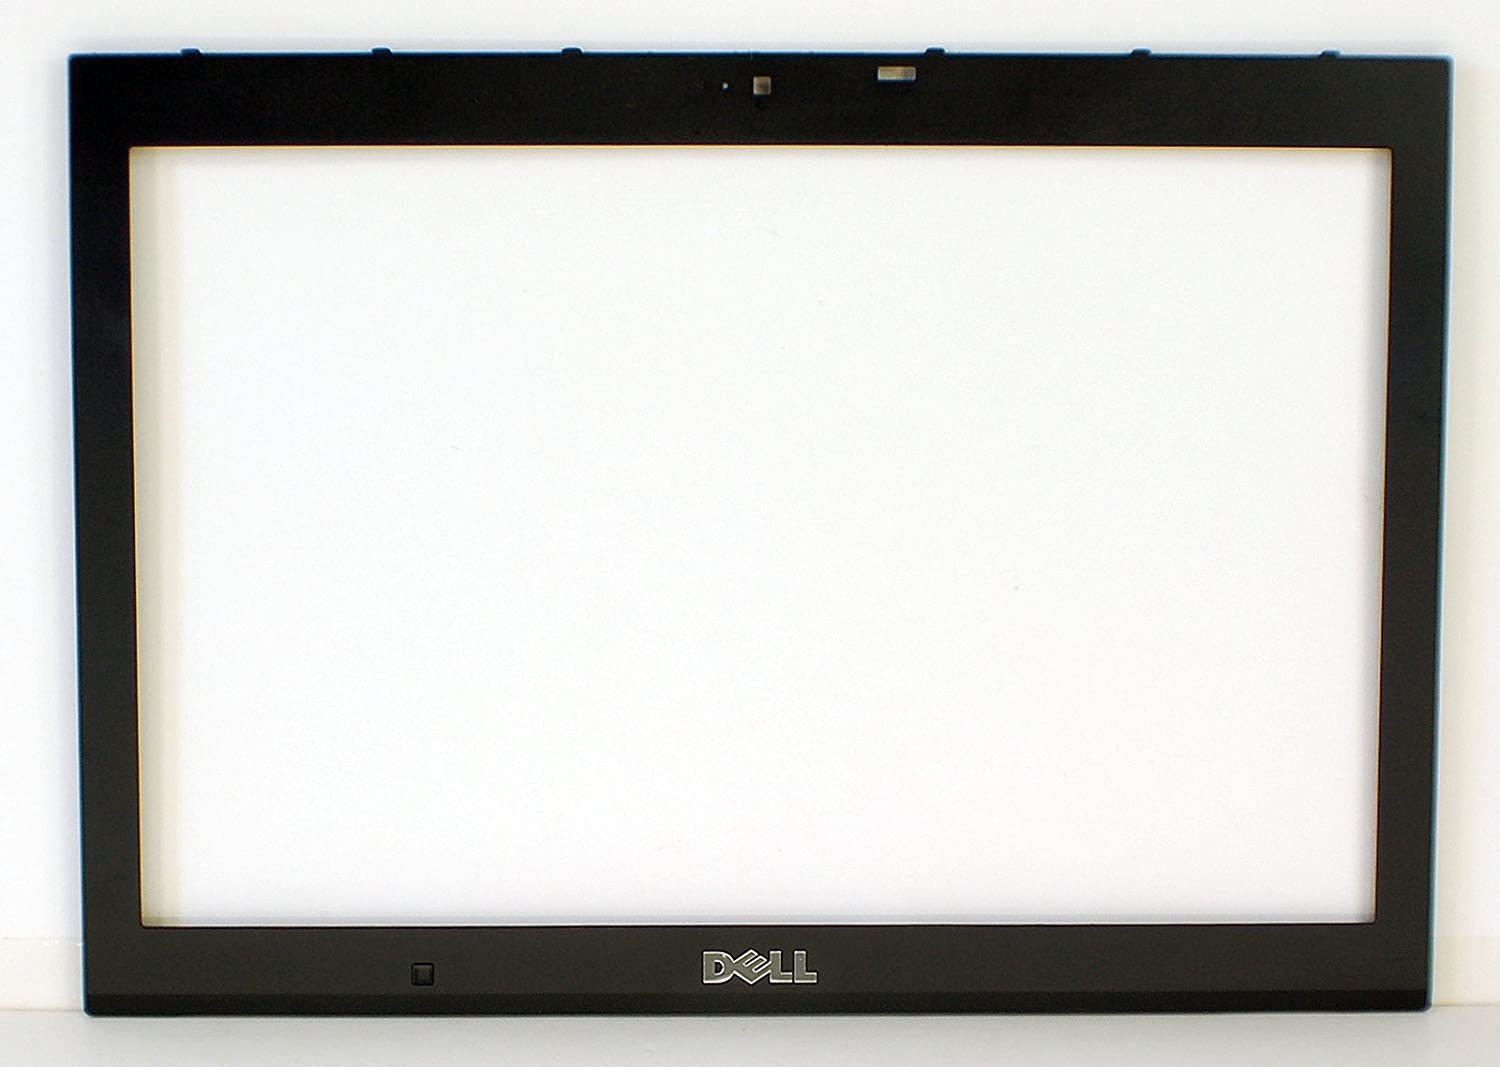 "New J211T Genuine OEM DELL Latitude E6400 ATG Laptop Notebook 14"" LCD Screen Front Frame Plastic Molding Housing Cover Enclosure Mask Trim Display Cam Camera Webcam/Microphone Port Hole Bezel"